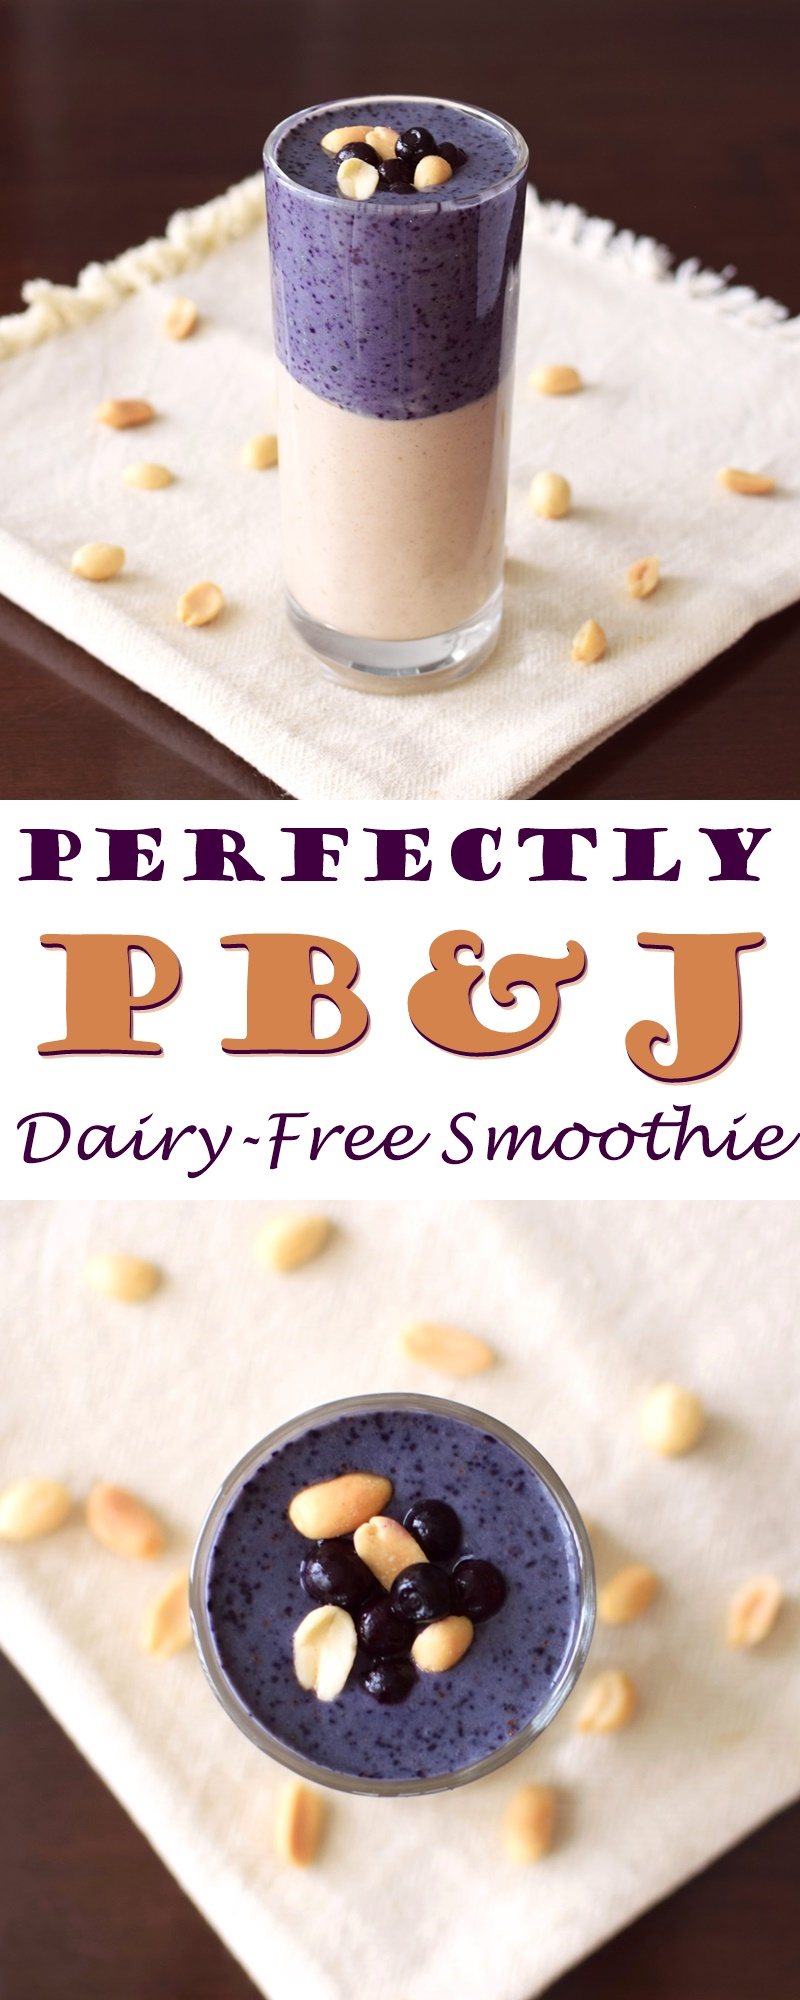 Perfect Peanut Butter and Jelly Smoothie Recipe! Healthy, Vegan, Dairy-Free!